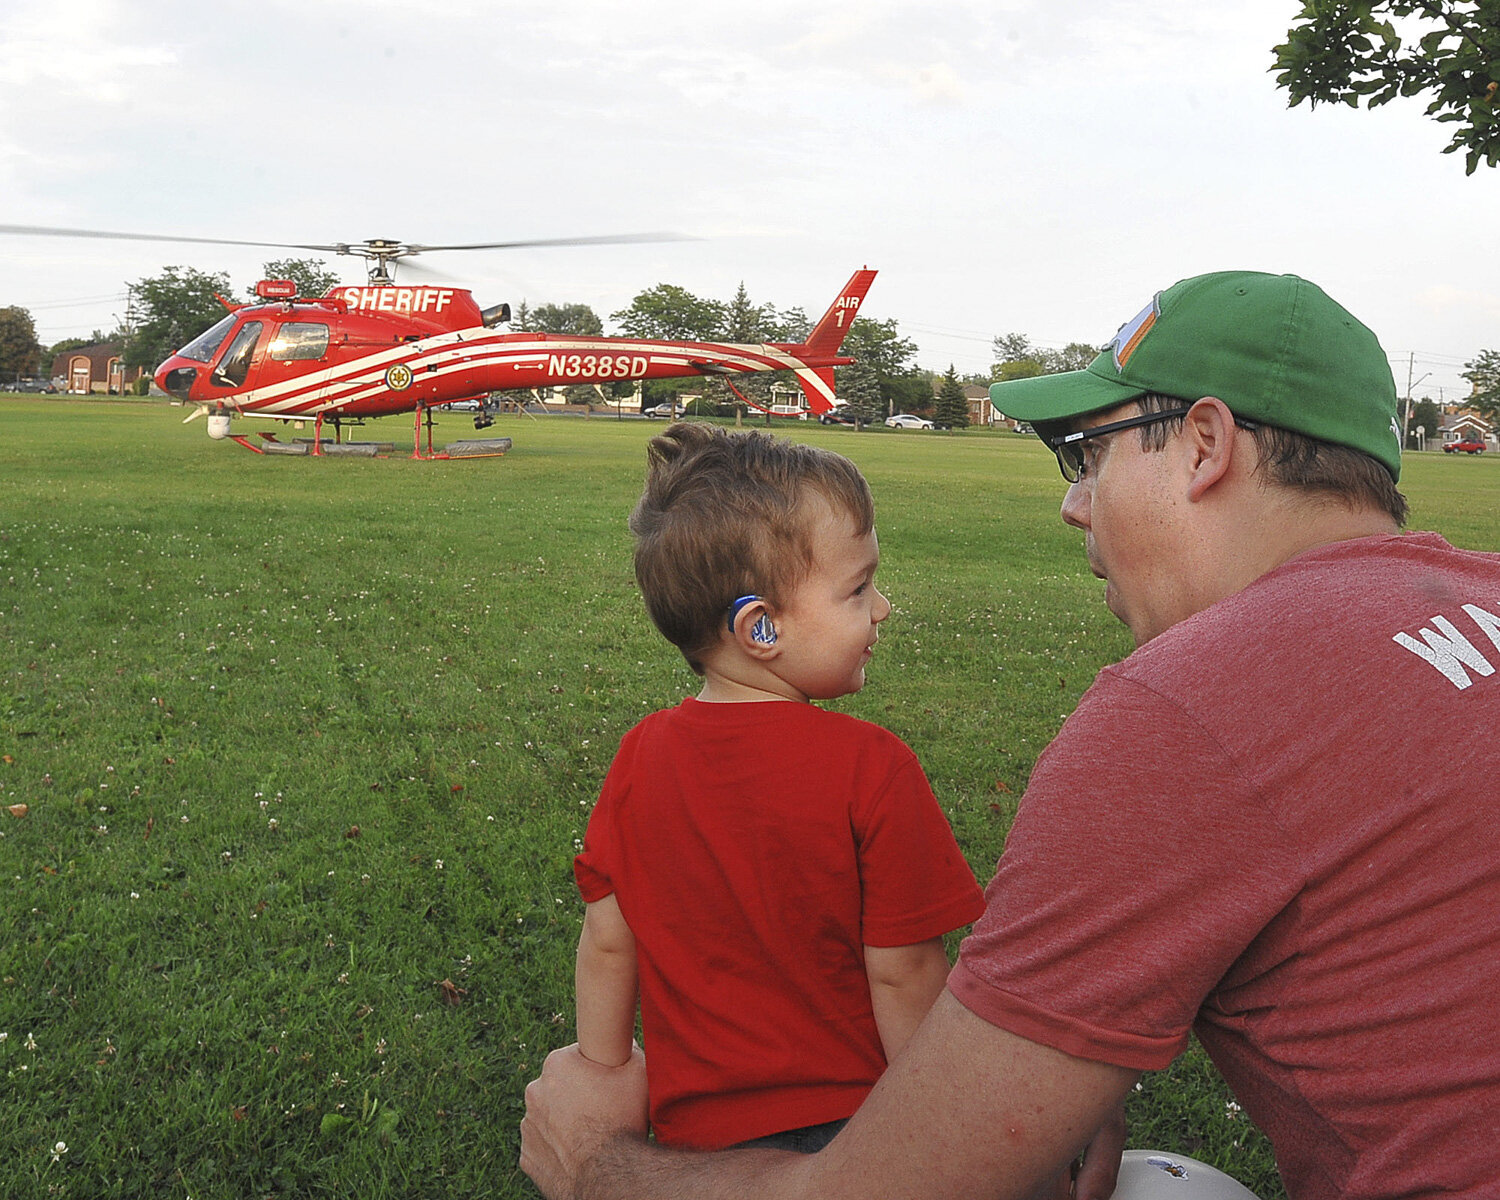 Two-year-old Connor Reagan gets excited with his dad, John as the Erie County Sheriff's Department helicopter perpares to take off during National Night Out at Cheektowaga Town Park